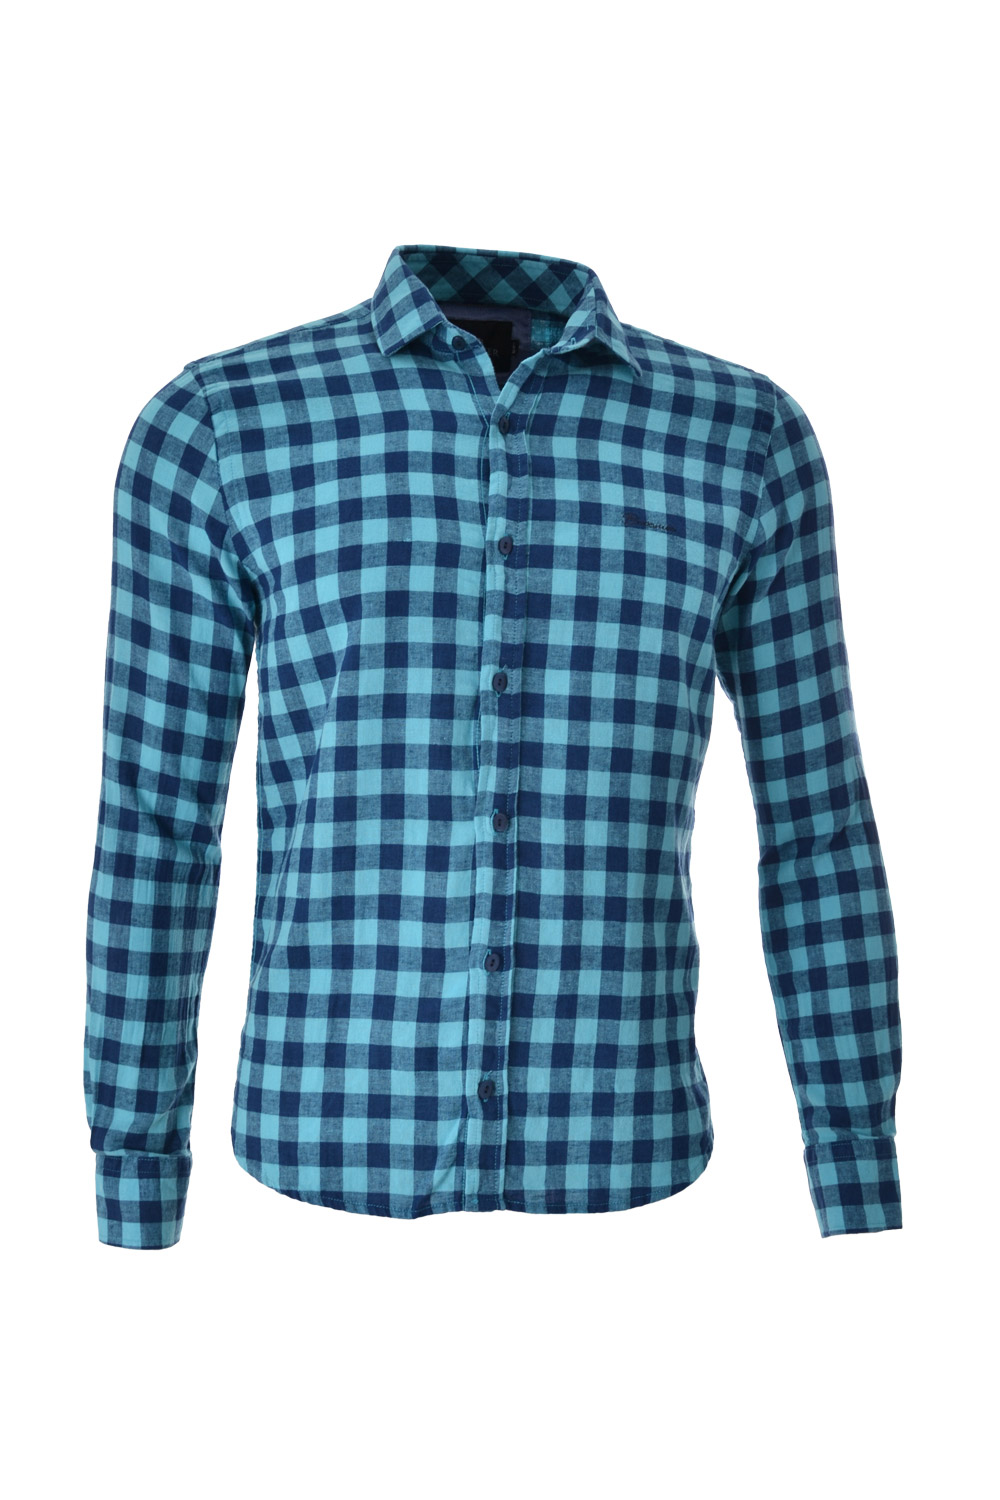 CAMISA ML BLUES ALGODAO LINHO TRENDY XADREZ LIGHT